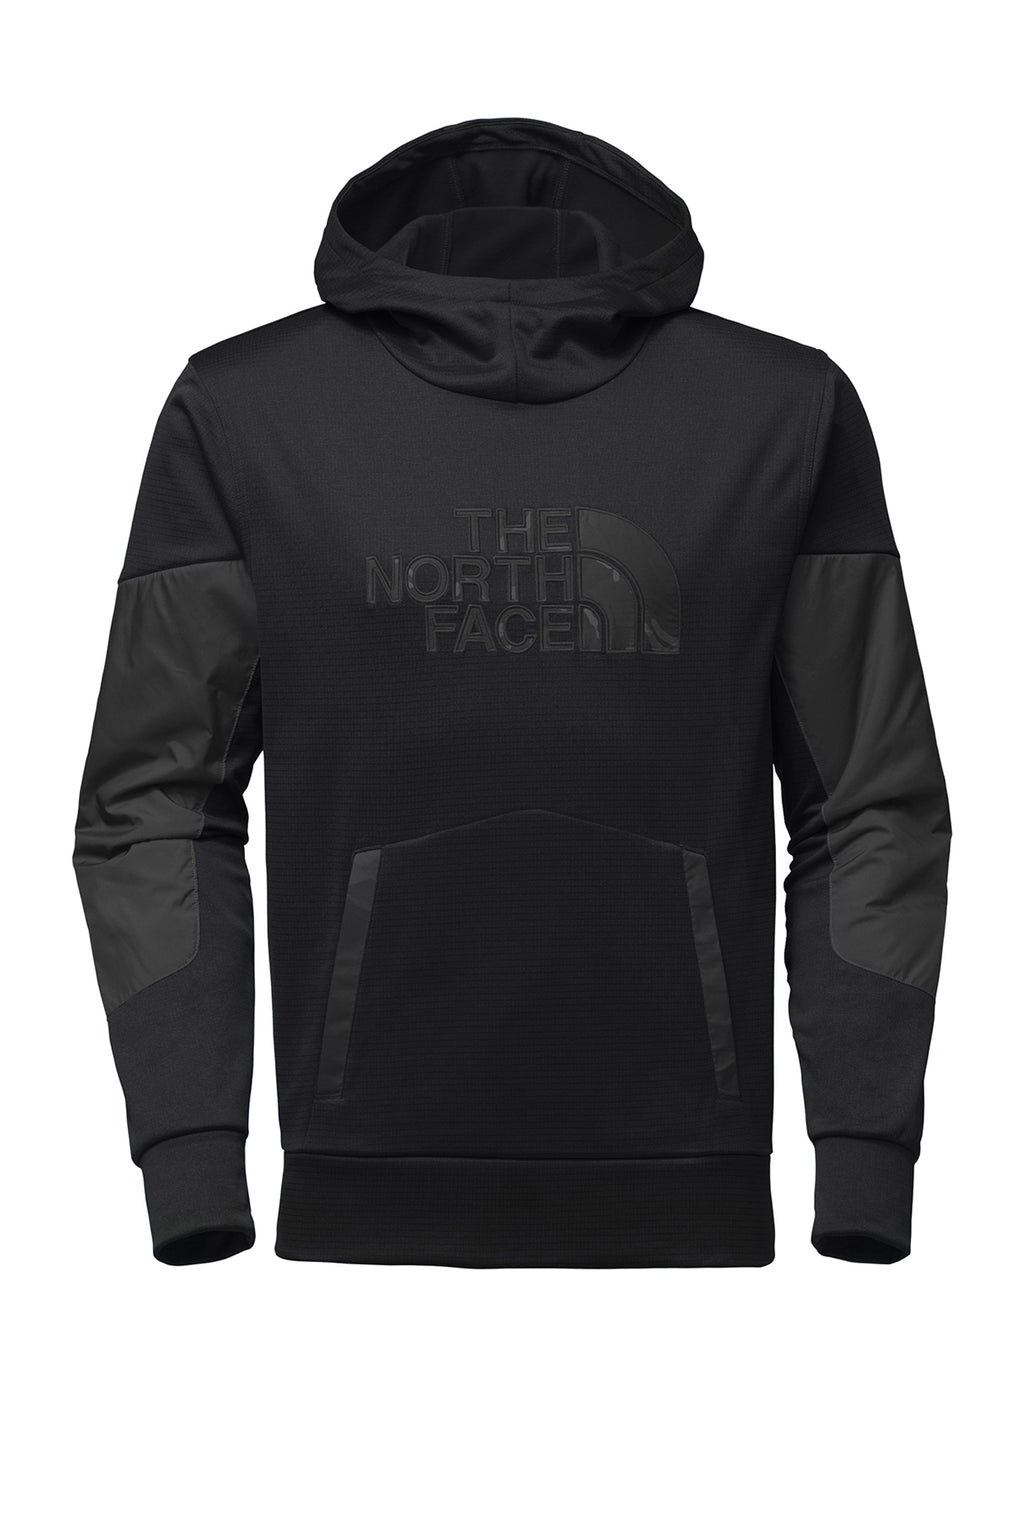 The North Face Mens Train N Logo Hoodie